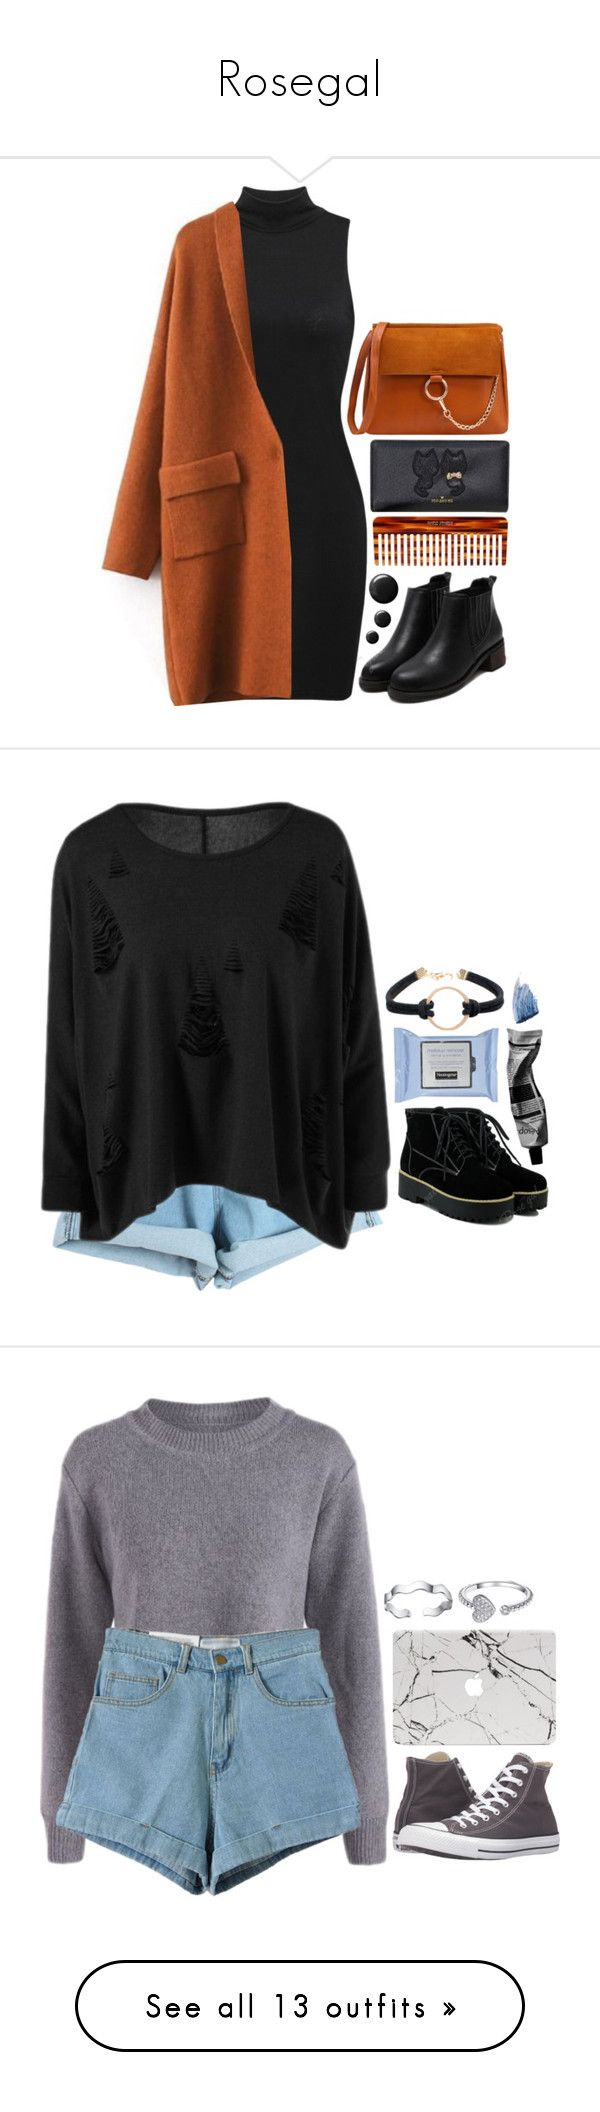 """""""Rosegal"""" by emilypondng ❤ liked on Polyvore featuring Mason Pearson, orangecrush, Chicnova Fashion, Aesop, Sisley, Converse, Zara, Vans, Casetify and H&M"""